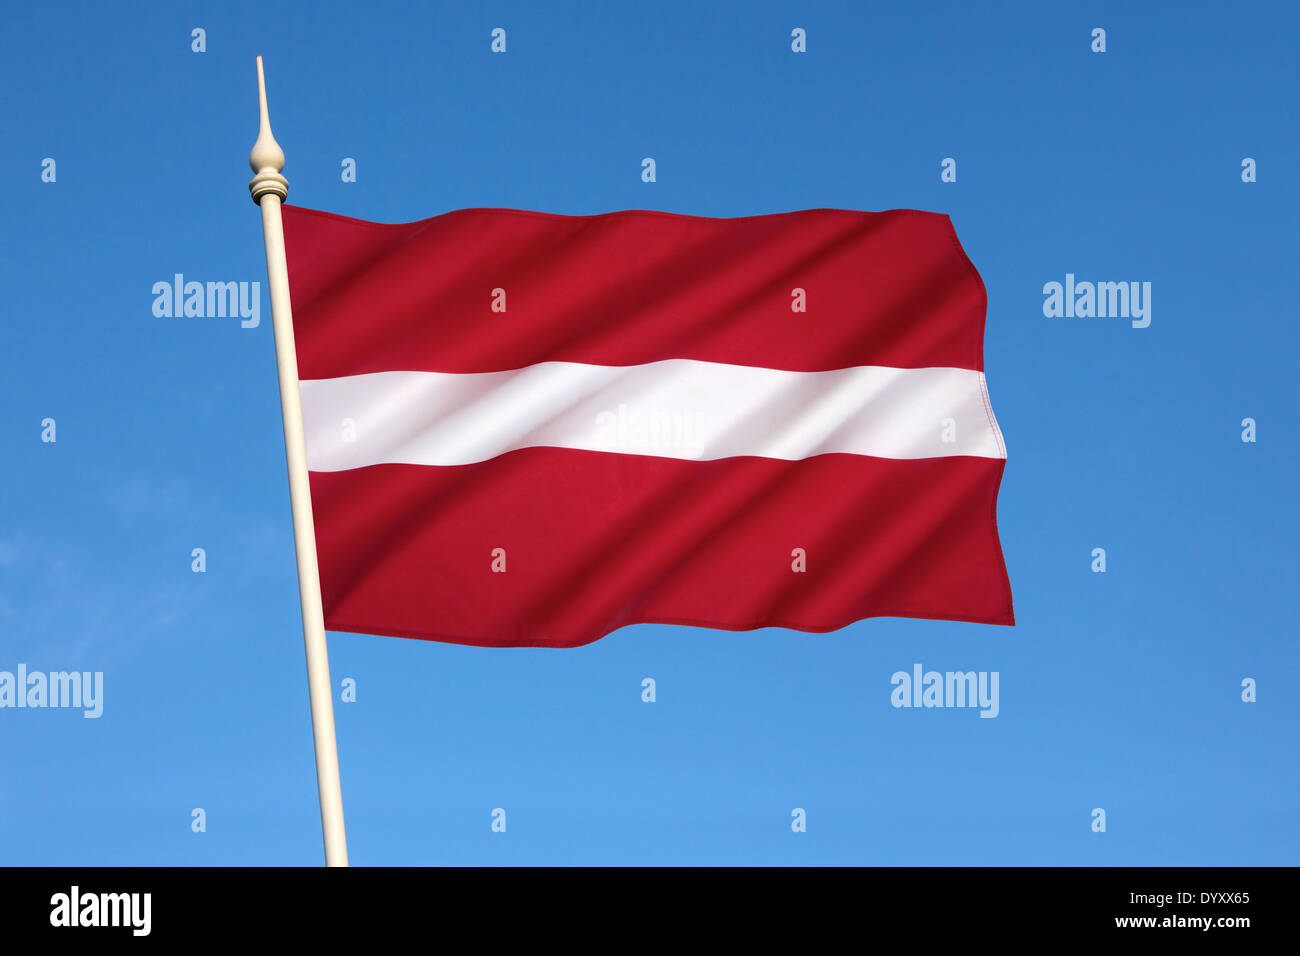 The national flag of Latvia - Stock Image